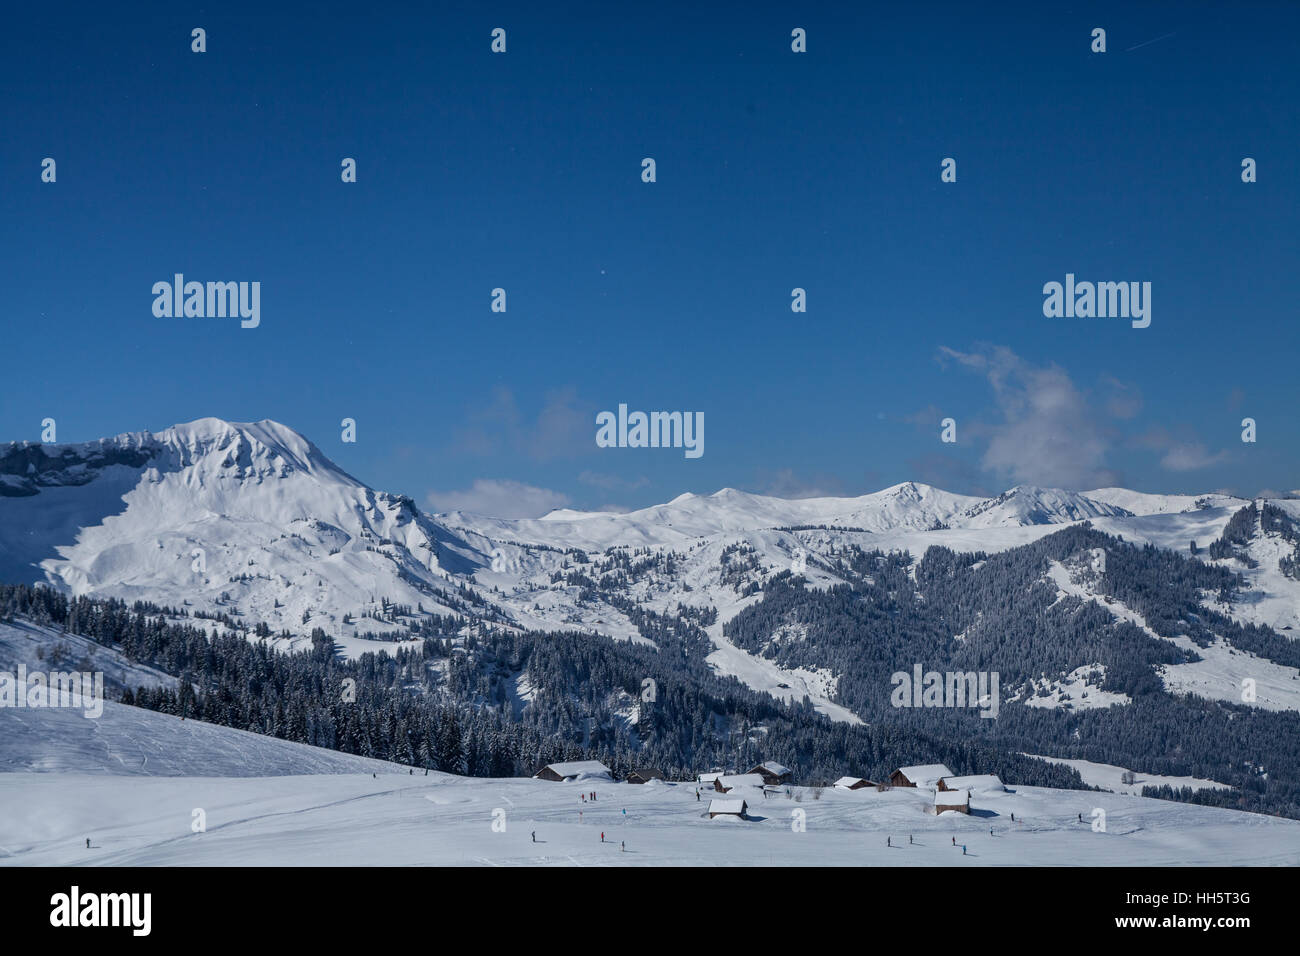 Mont Blanc Ski Resort Photo Stock